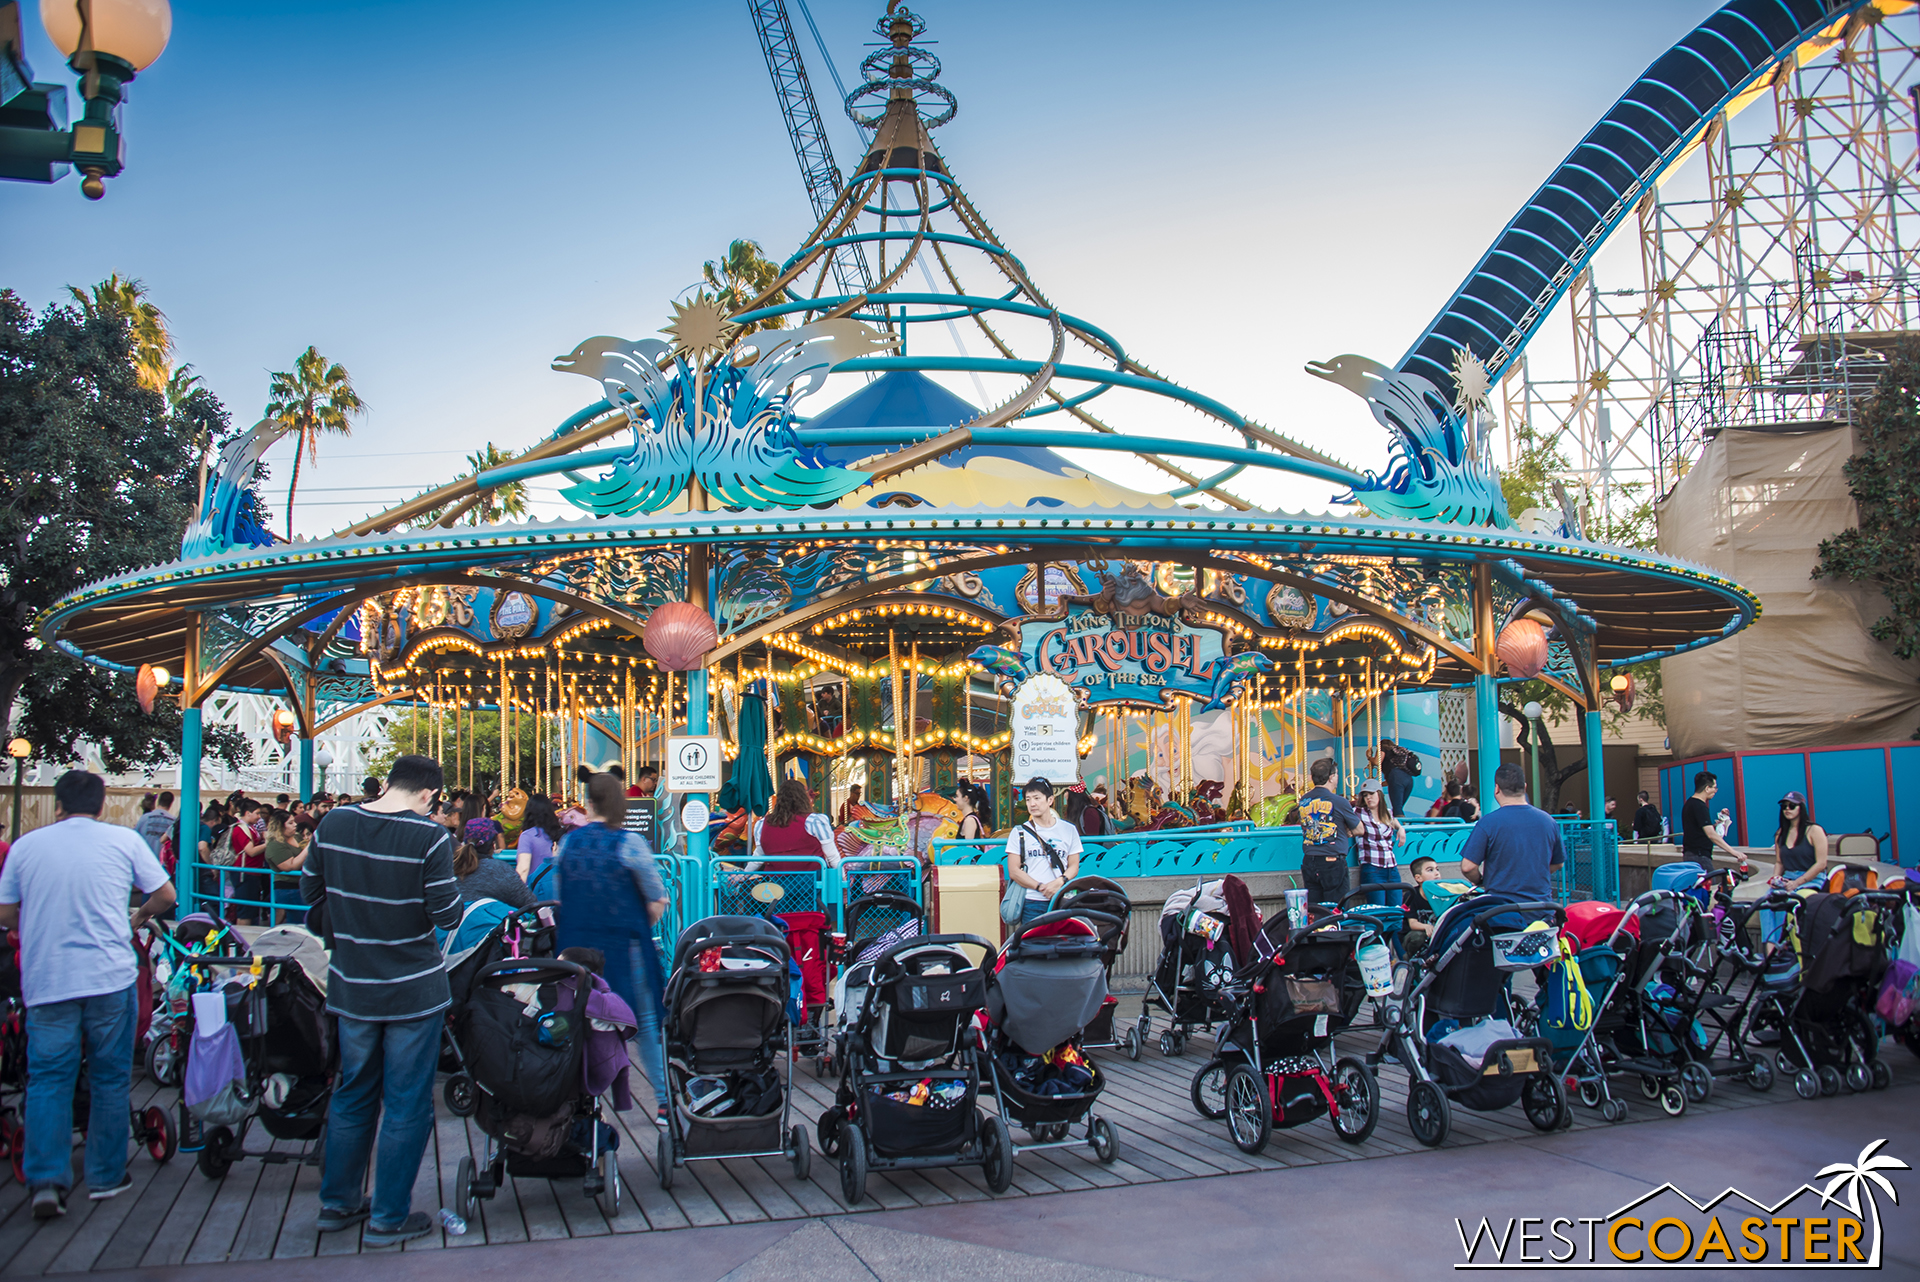 """King Triton's Carousel remains open. I'm not sure if there are plans for this to be changed, but as my friend, Danny, quipped, if they don't re-theme it to Toy Story and call it """"Woody's Round-Up,"""" that's a missed opportunity."""